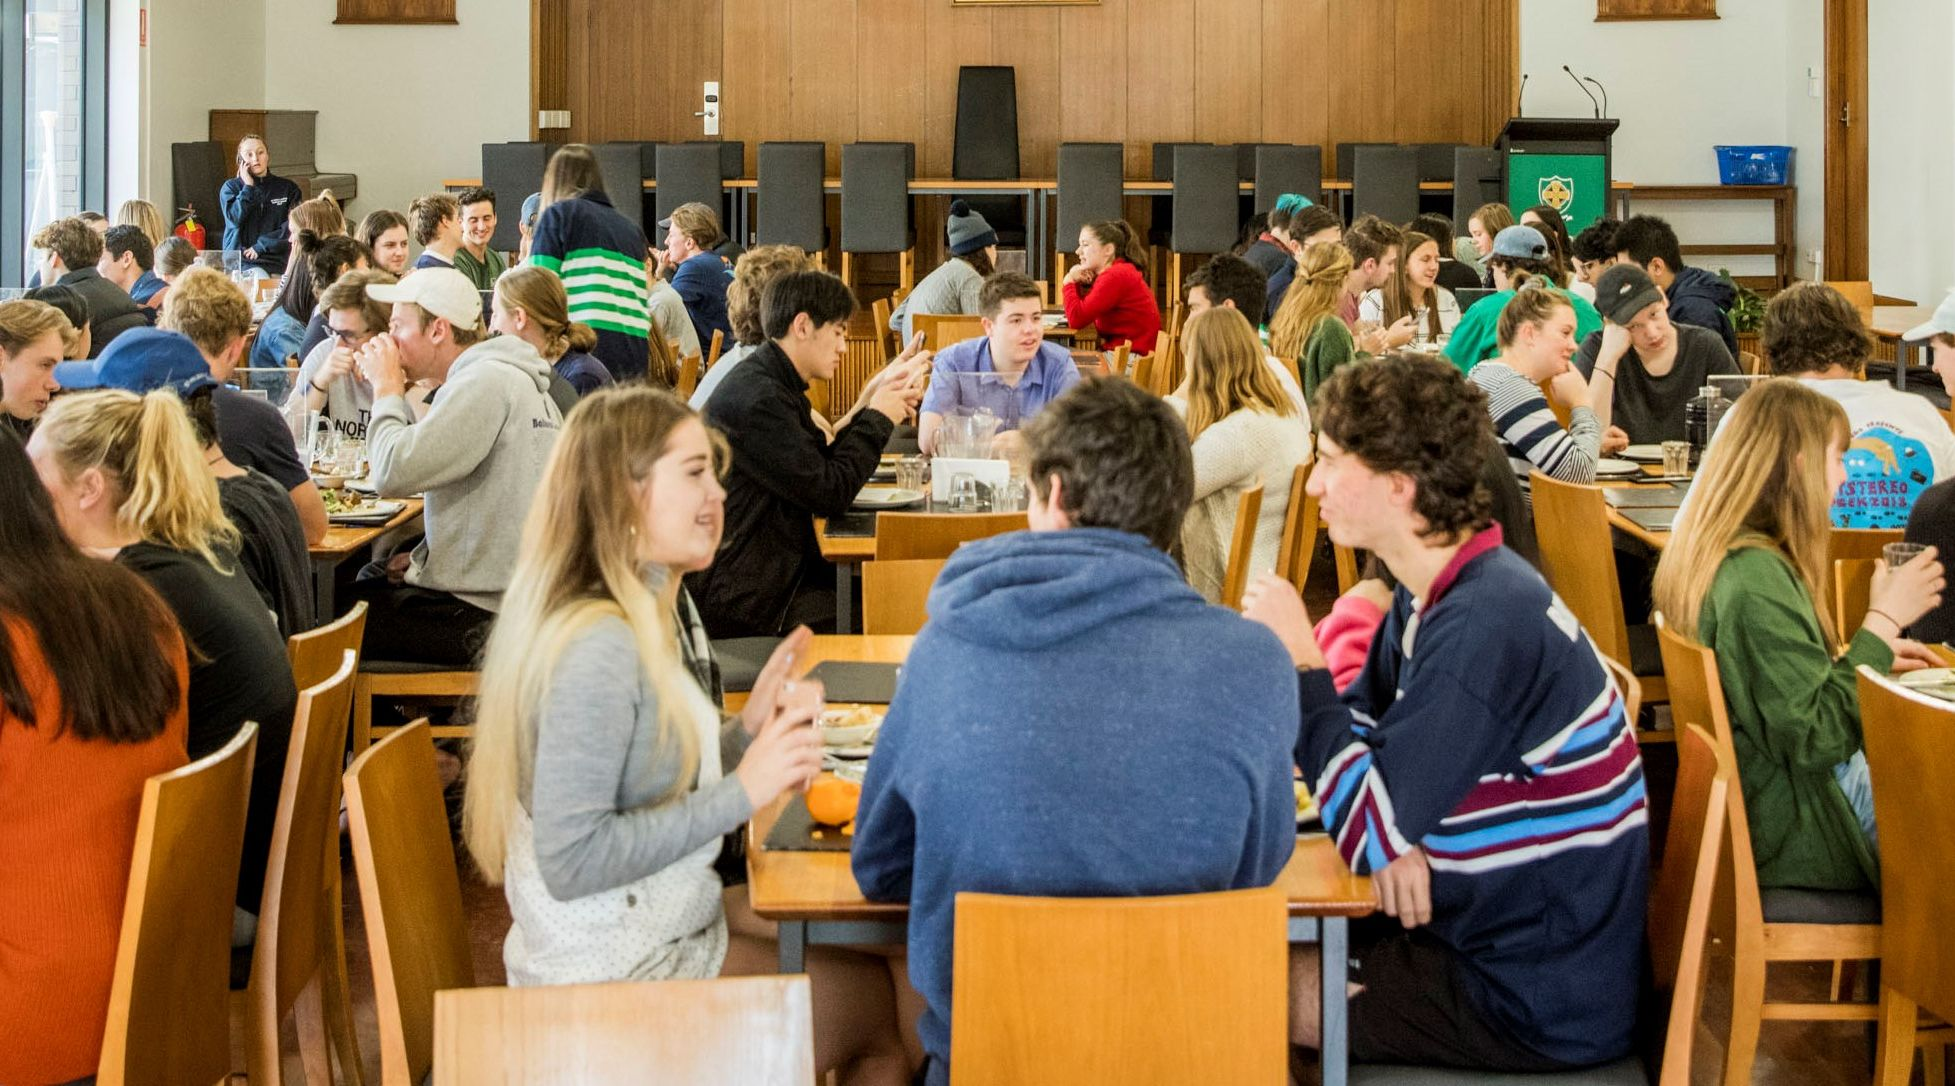 Students in dining hall 2